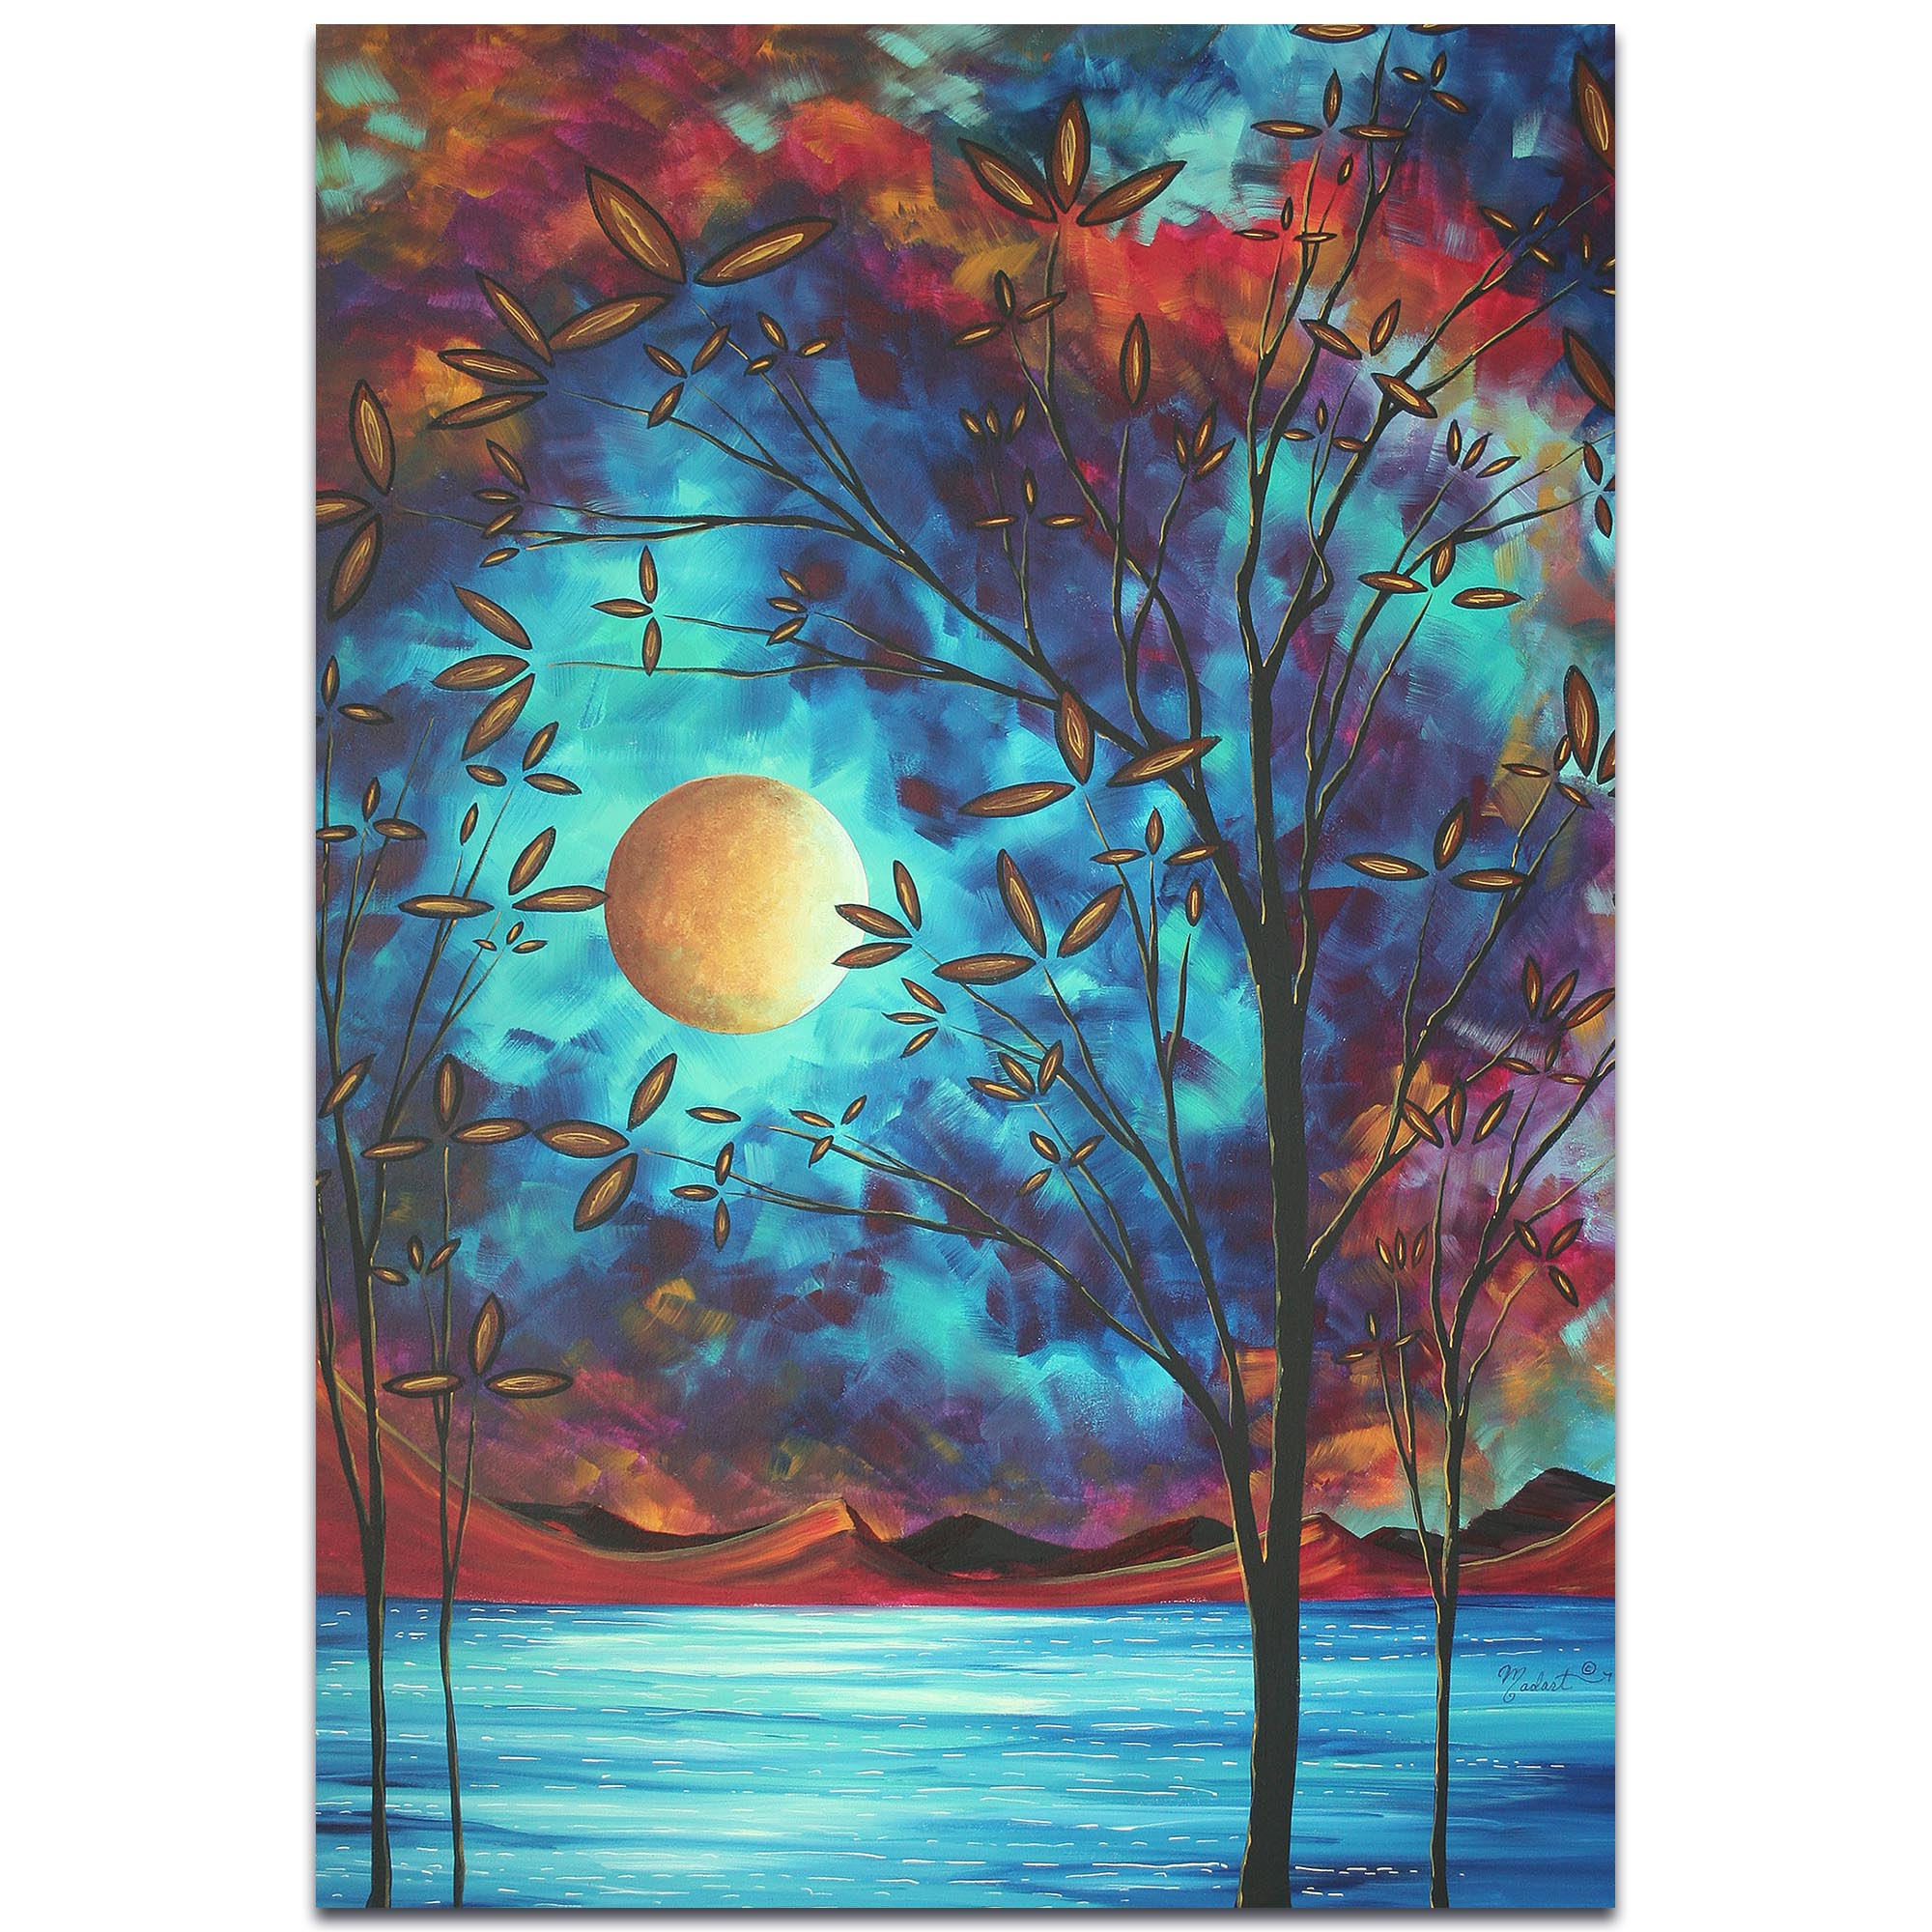 Coastal Landscape 'Visionary Delight' - Abstract Tree Art on Metal or Acrylic